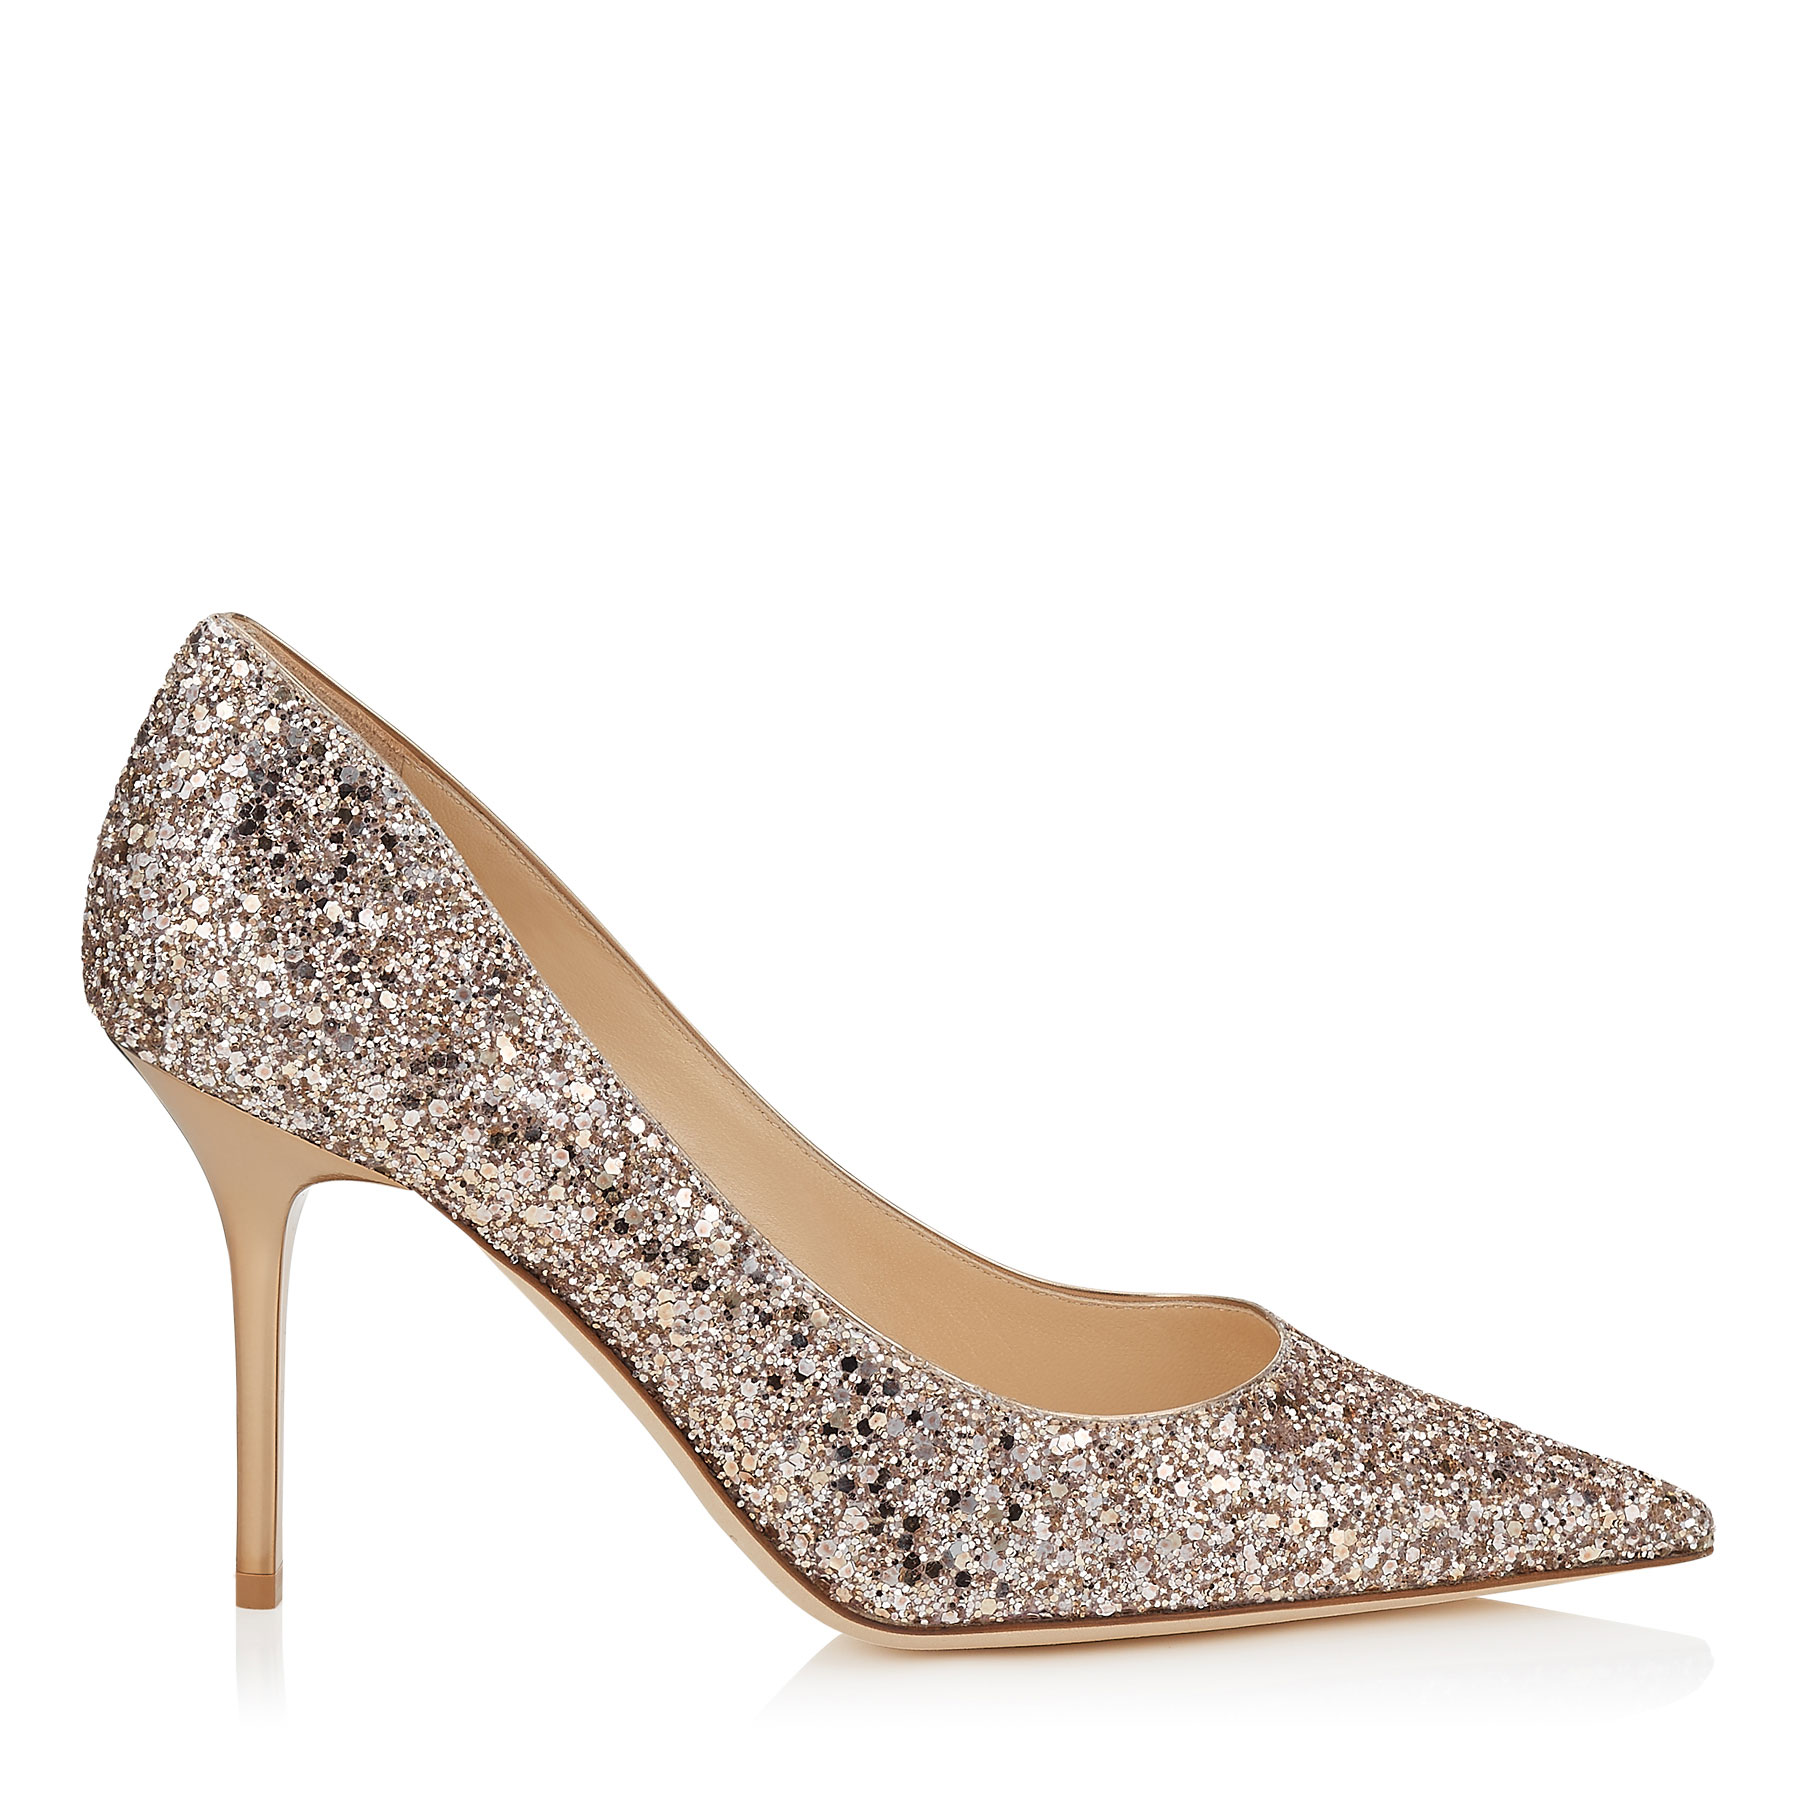 AGNES Nude Shadow Coarse Glitter Fabric Pointy Toe Pumps